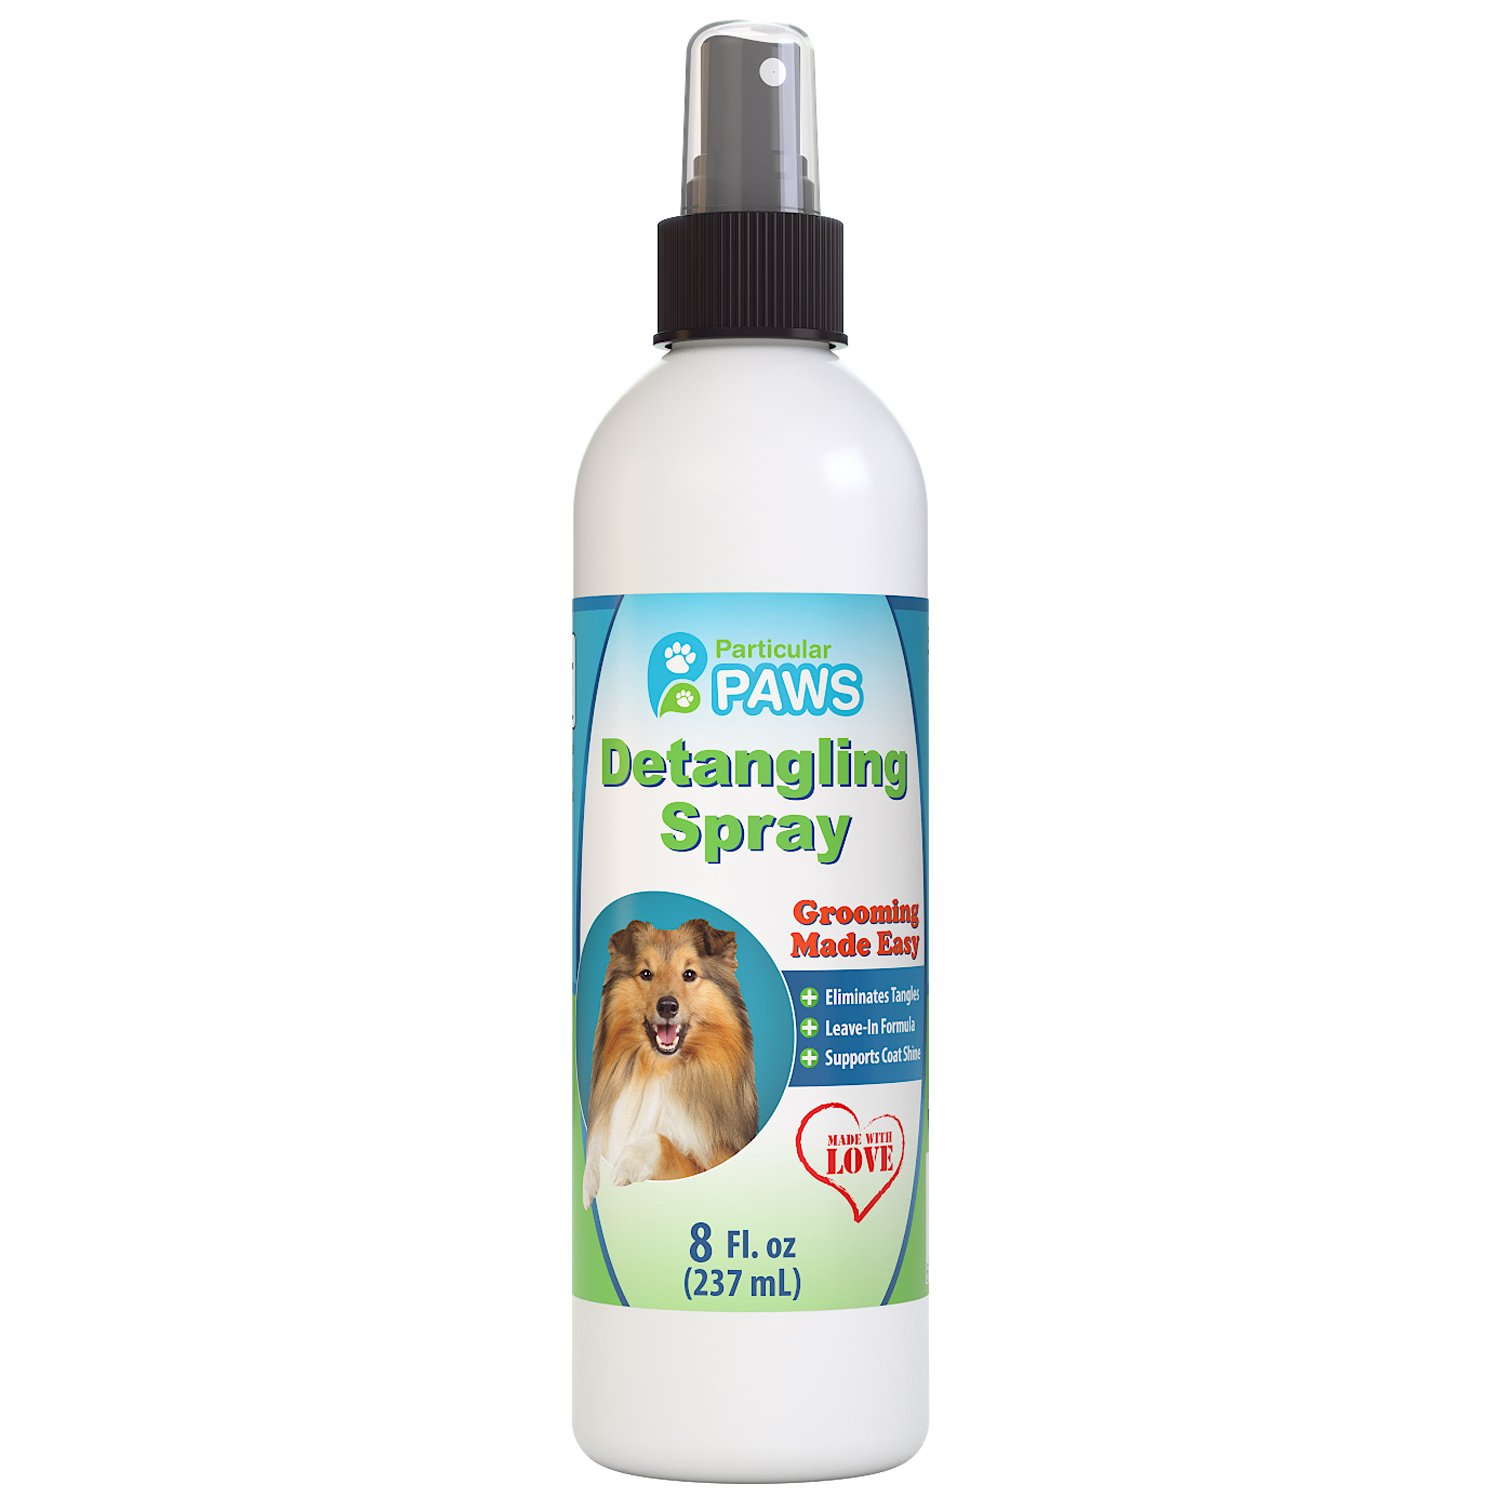 Particular Paws Detangling Spray for Dogs - Un Tangles and Conditions - 8oz